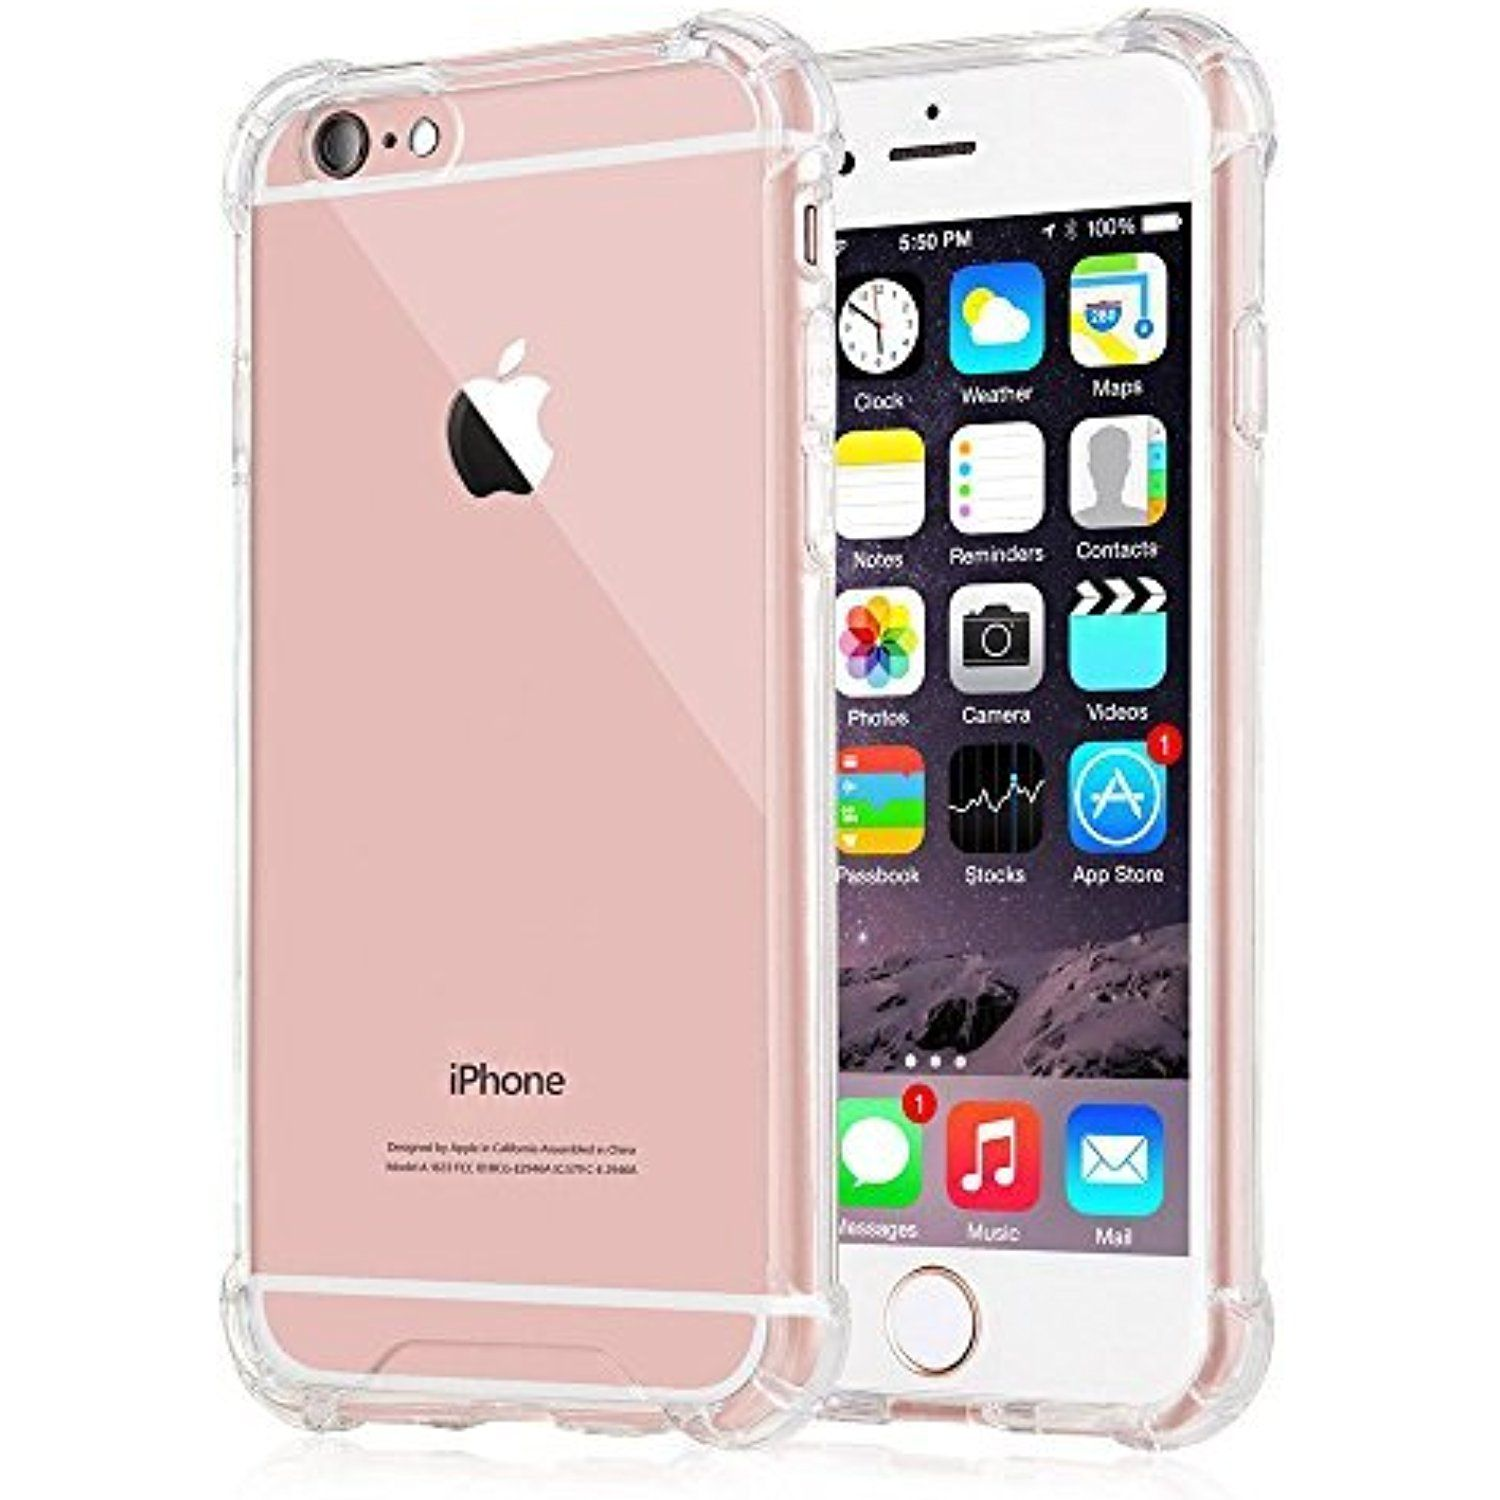 iPhone 6s Case,Yoyamo iPhone 6s Crystal Clear Cover Case [Shock ...